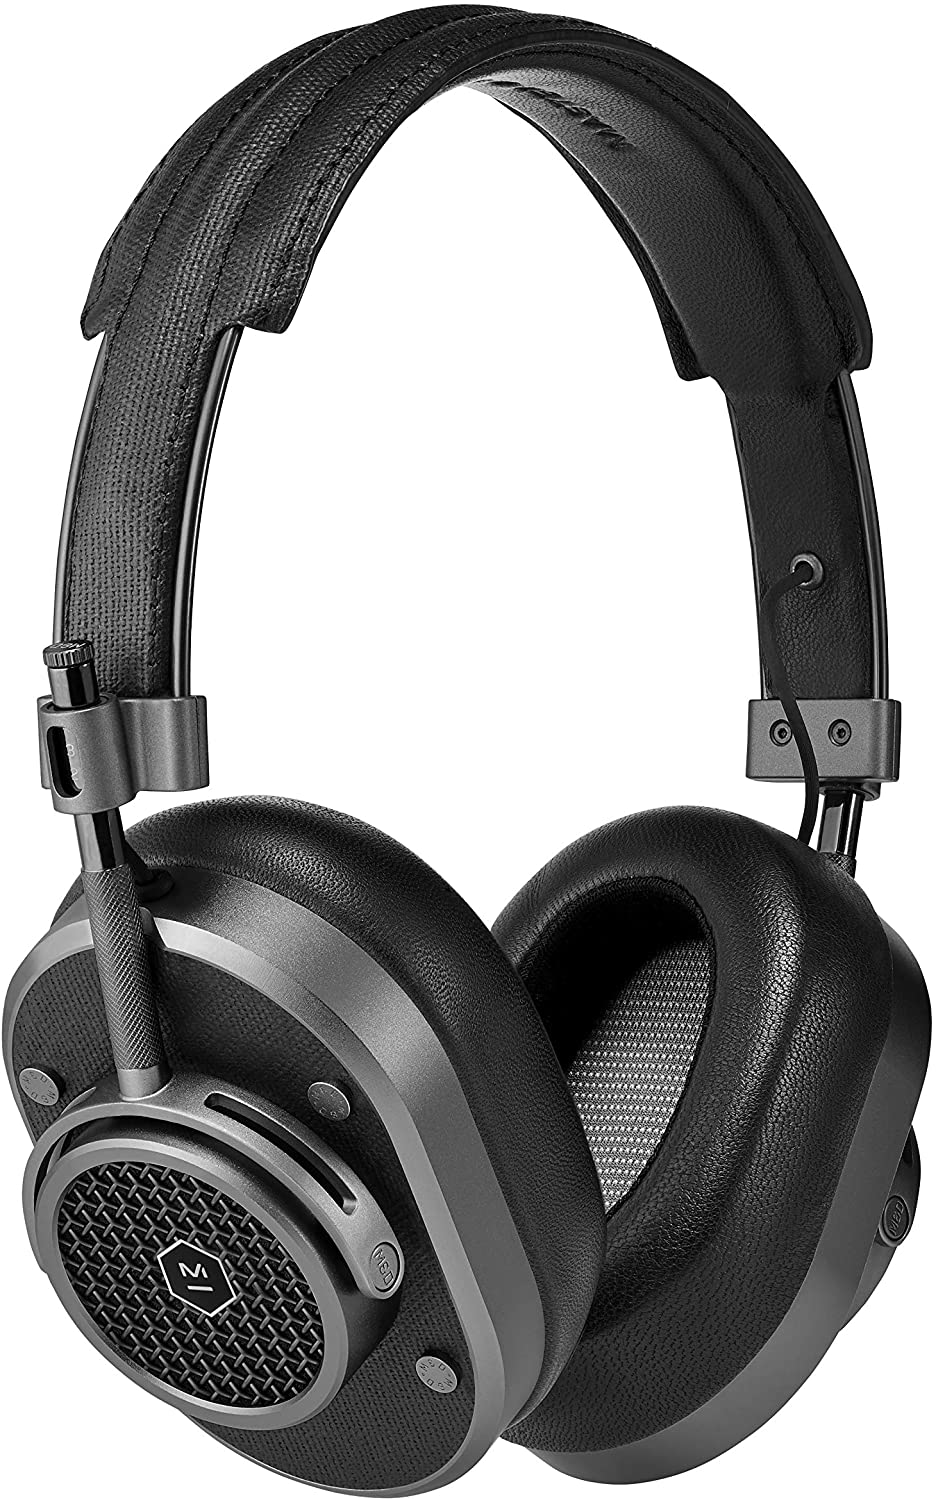 master and dynamic wireless headphones